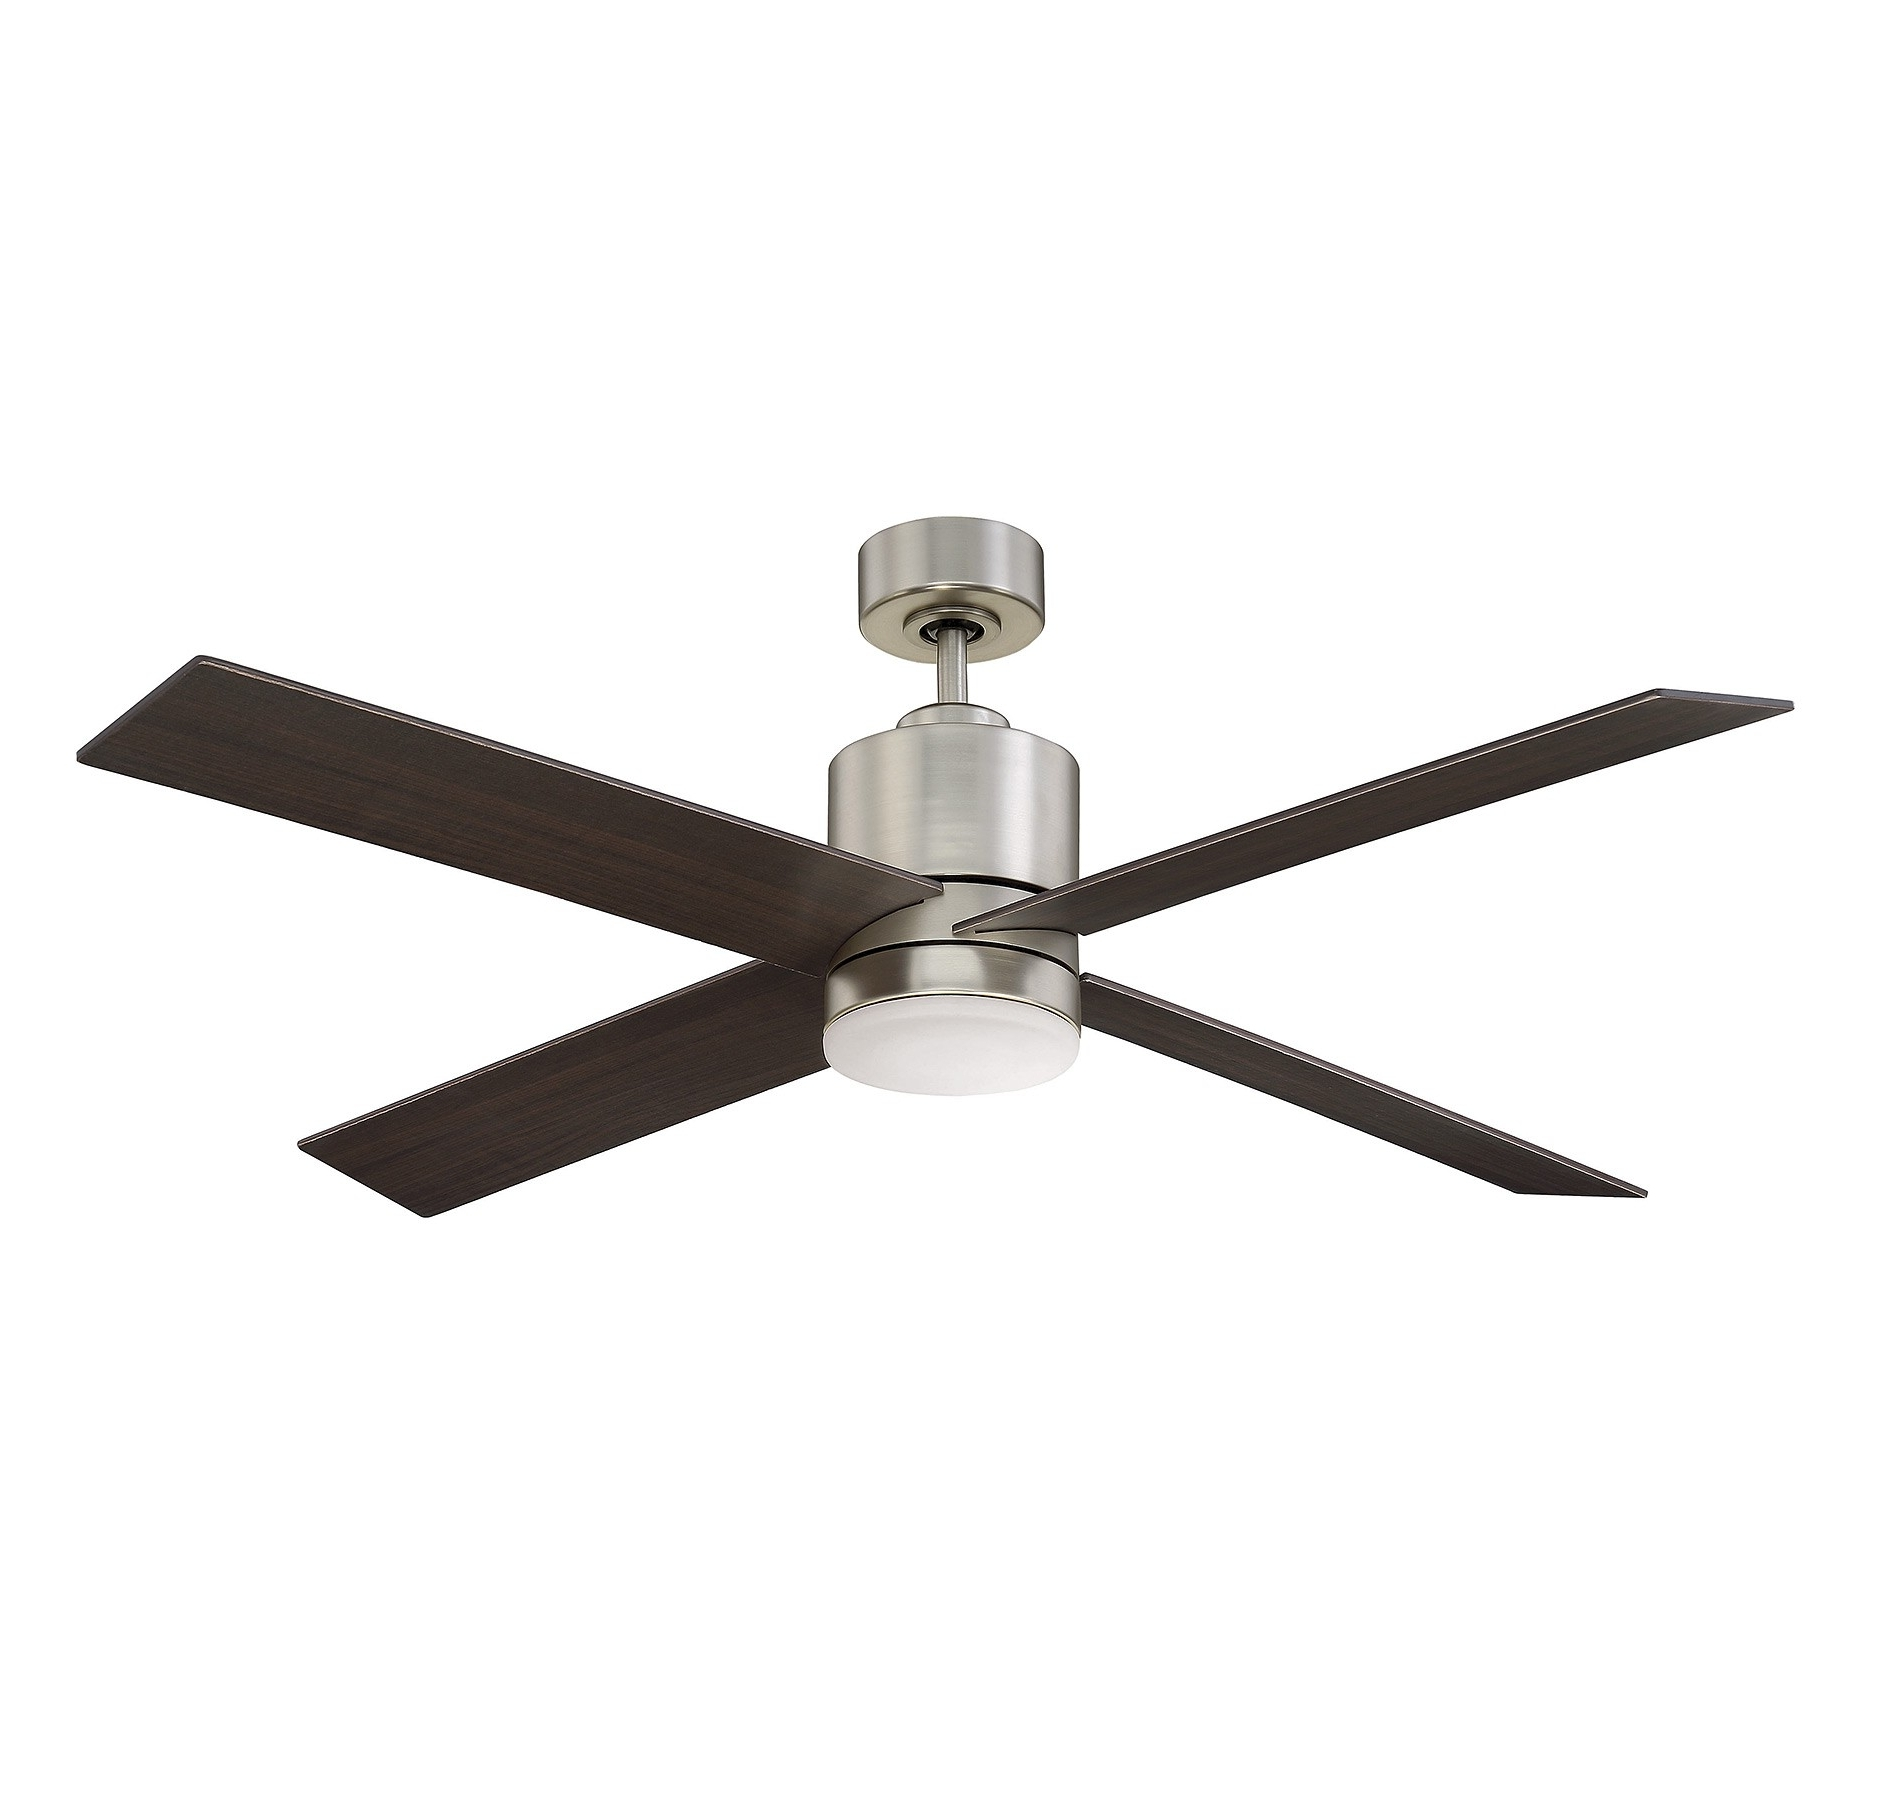 Coastal Outdoor Ceiling Fans Throughout Most Popular 52 6110 4Cn Sn Dayton 52 Inch 4 Blade Ceiling Fansavoy House (View 7 of 20)